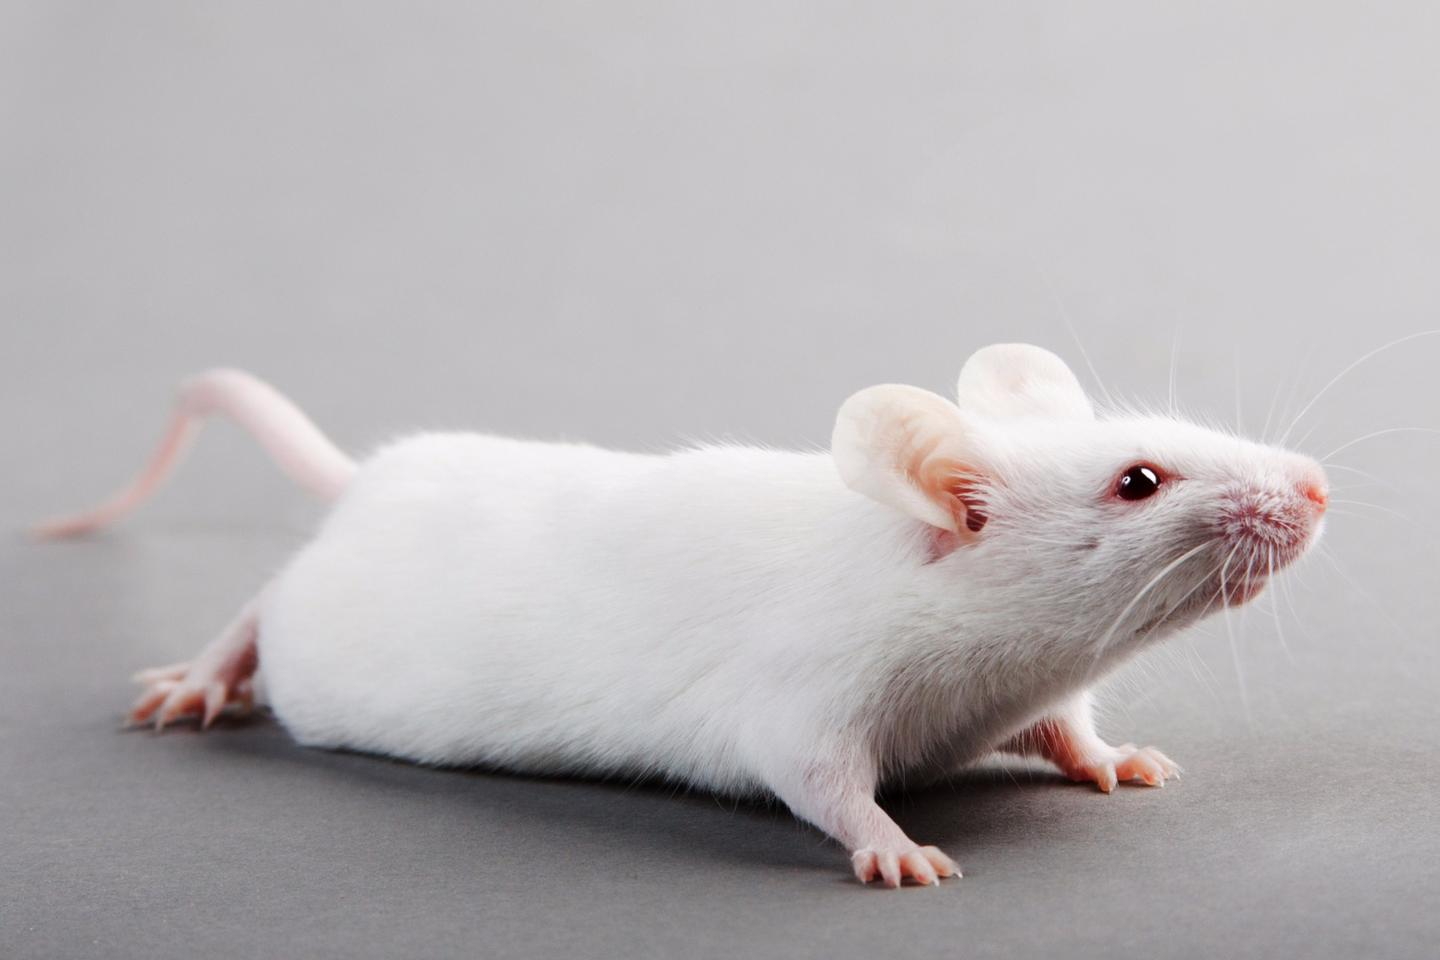 The inhibition in activity of an enzyme called PDE4B, which is also found in humans, has been found to boost intelligence in mice